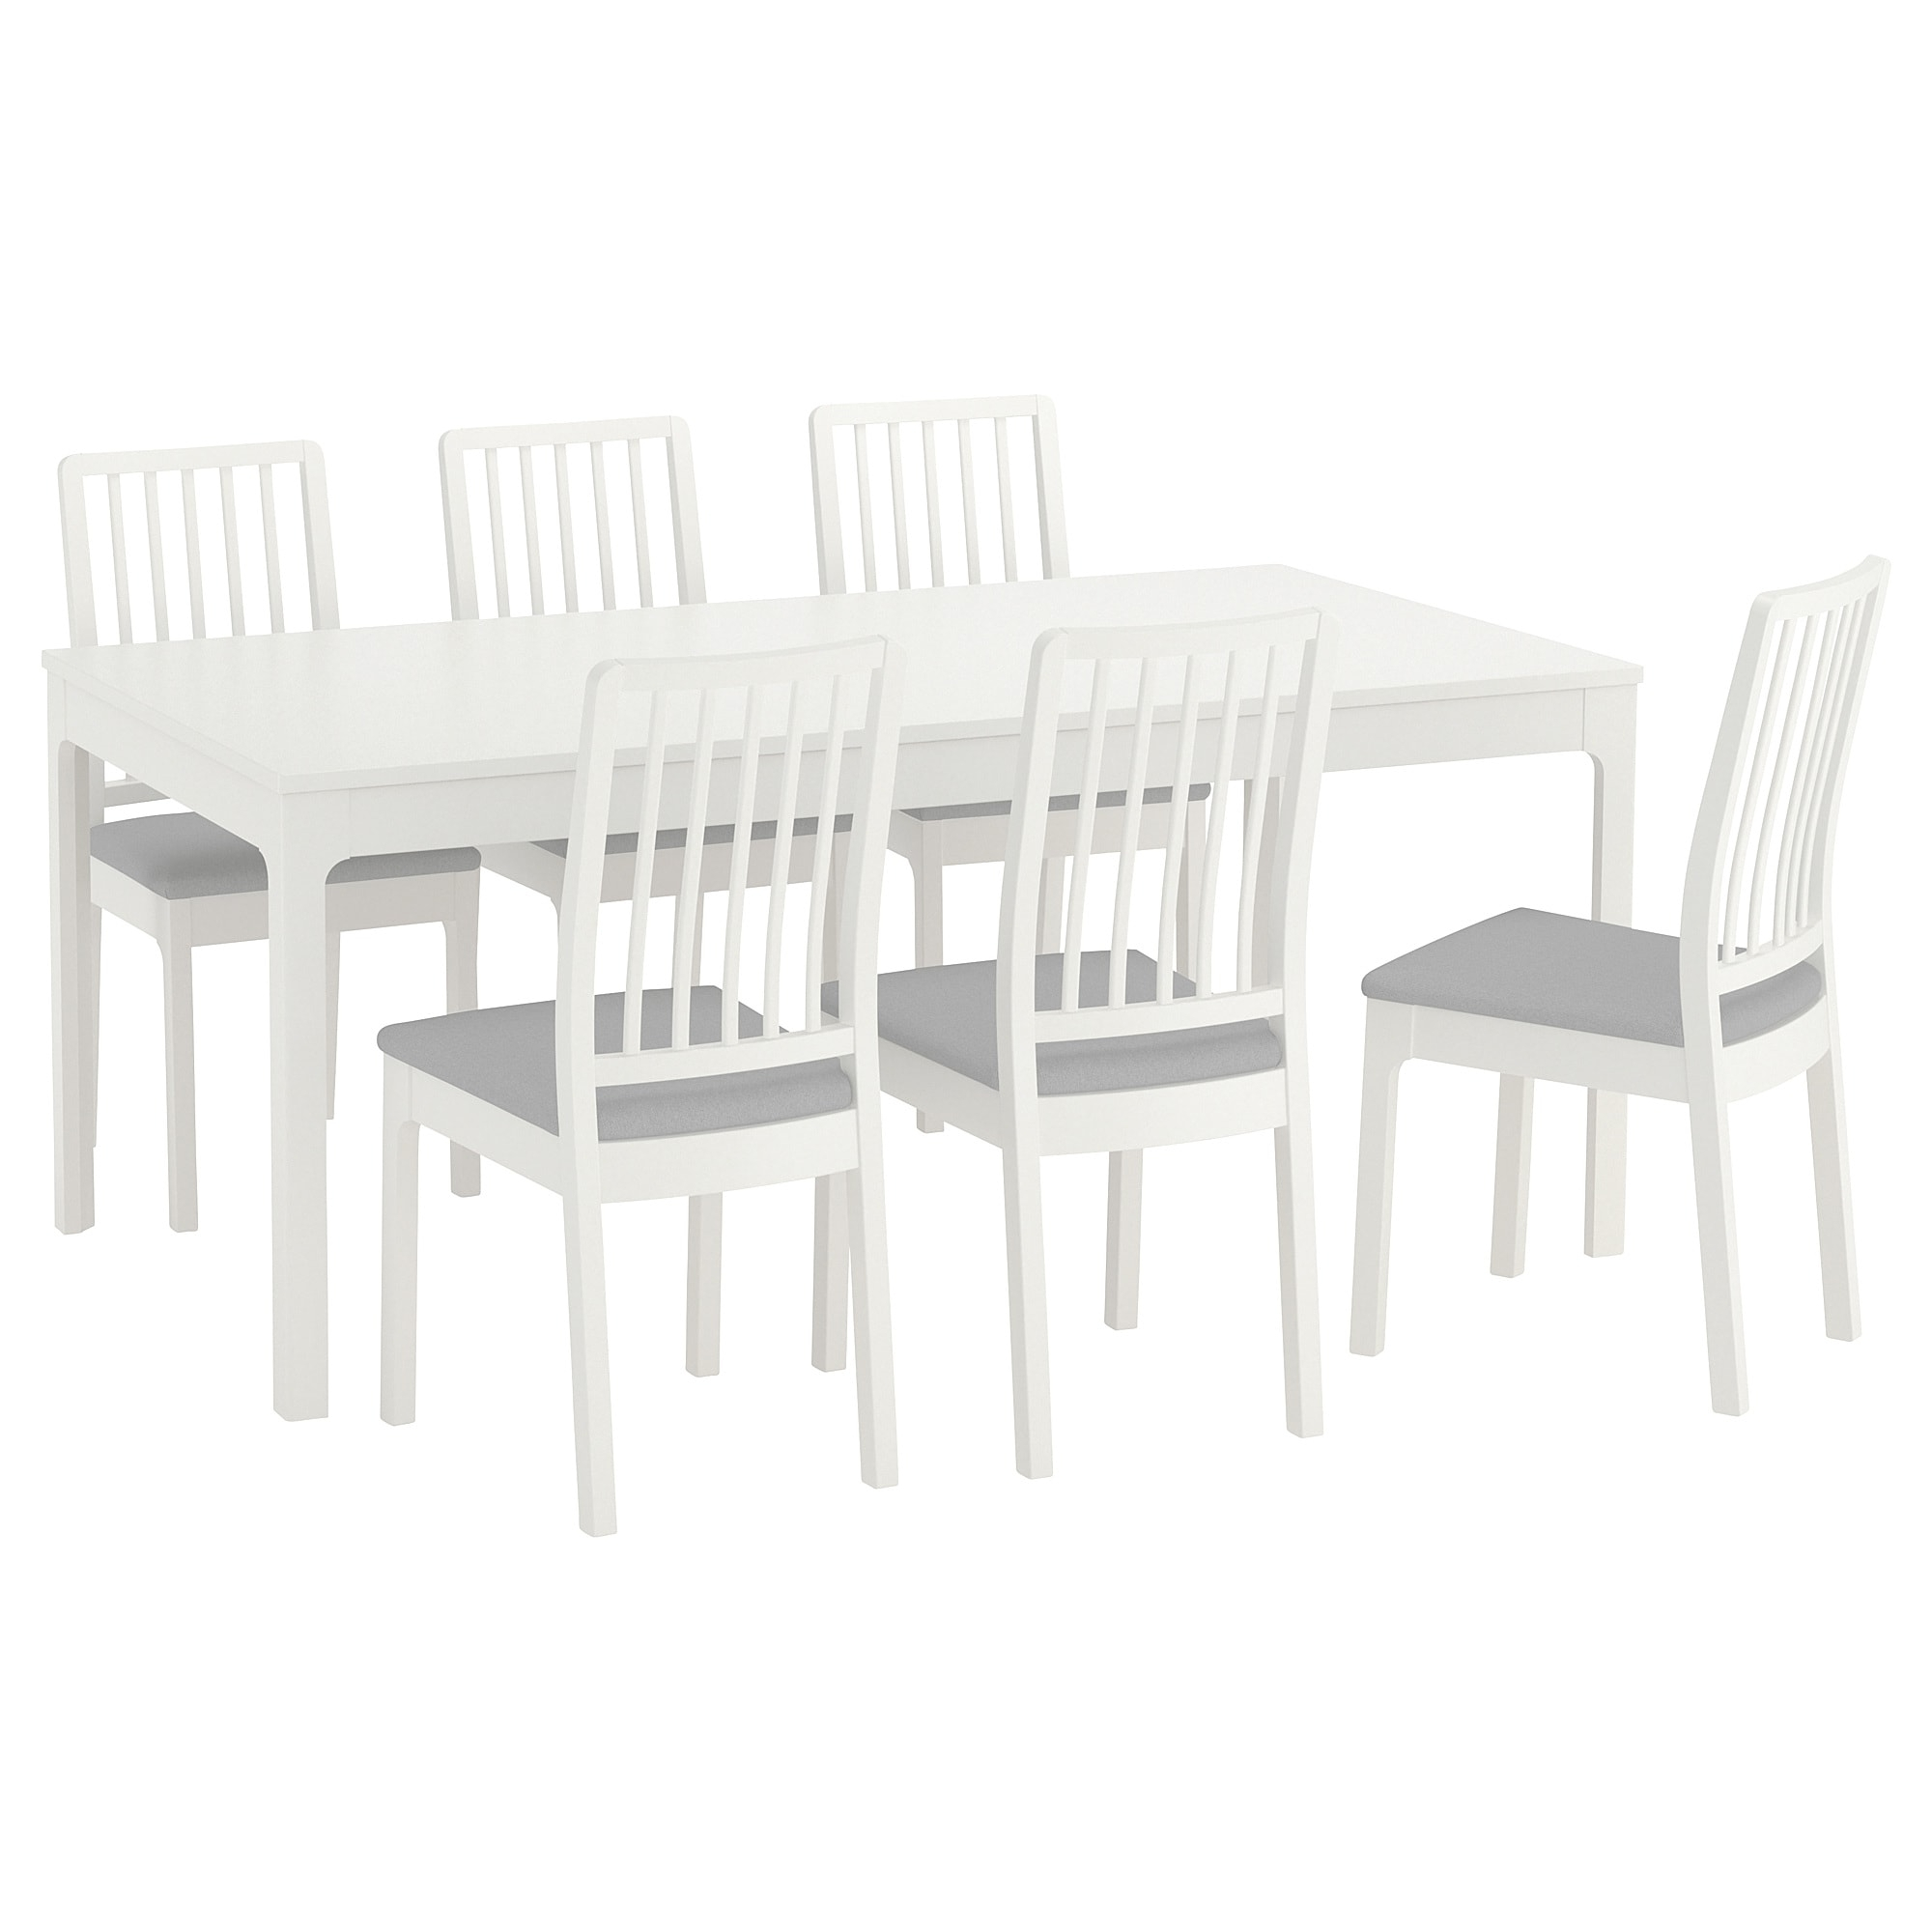 Dining Tables With Grey Chairs Pertaining To Popular Ekedalen/ekedalen Table And 6 Chairs White/ramna Light Grey 180/ (View 24 of 25)